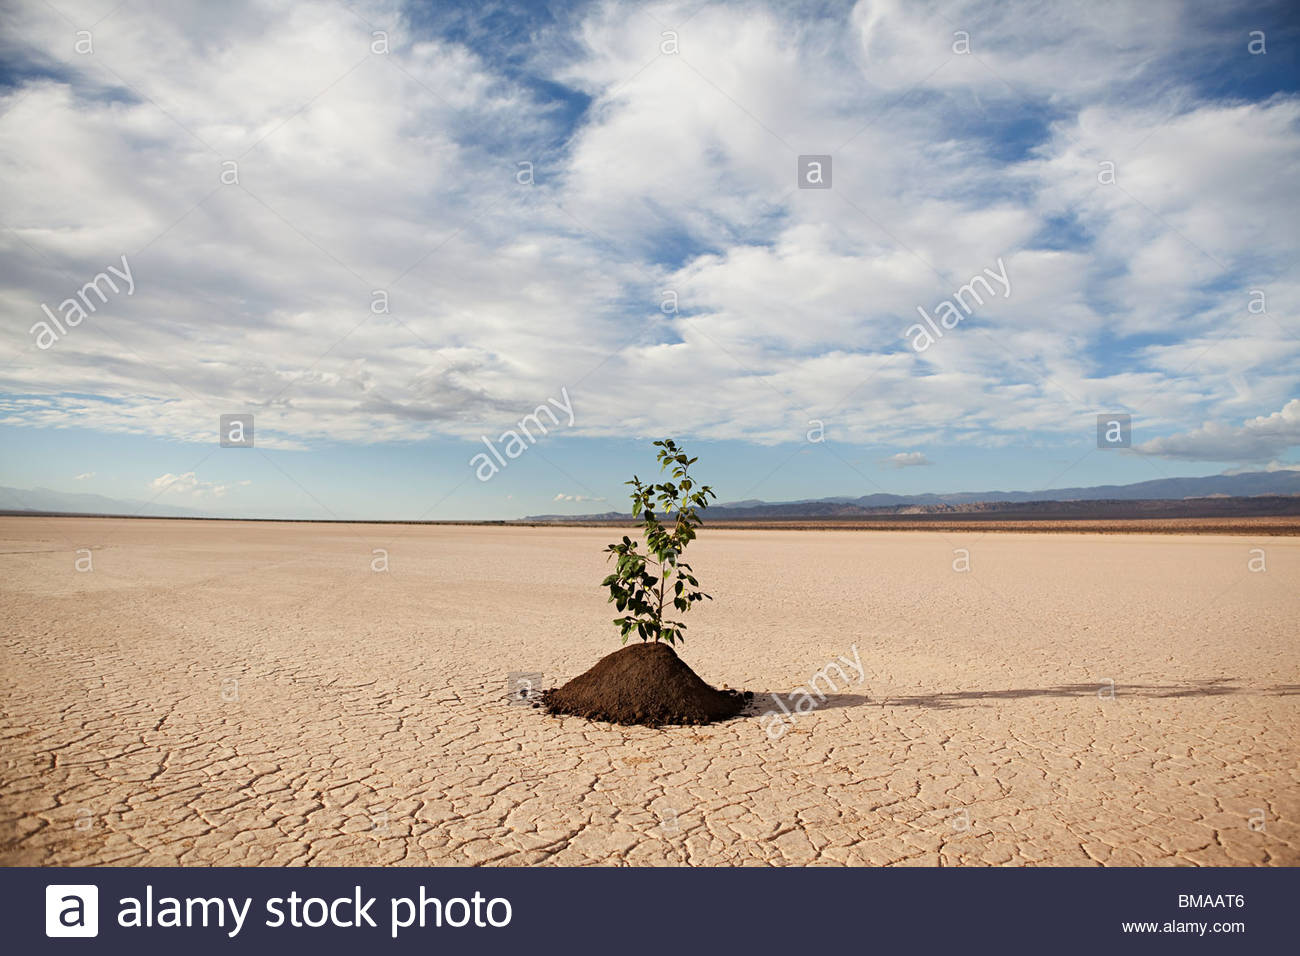 Plant growing in desert landscape - Stock Image